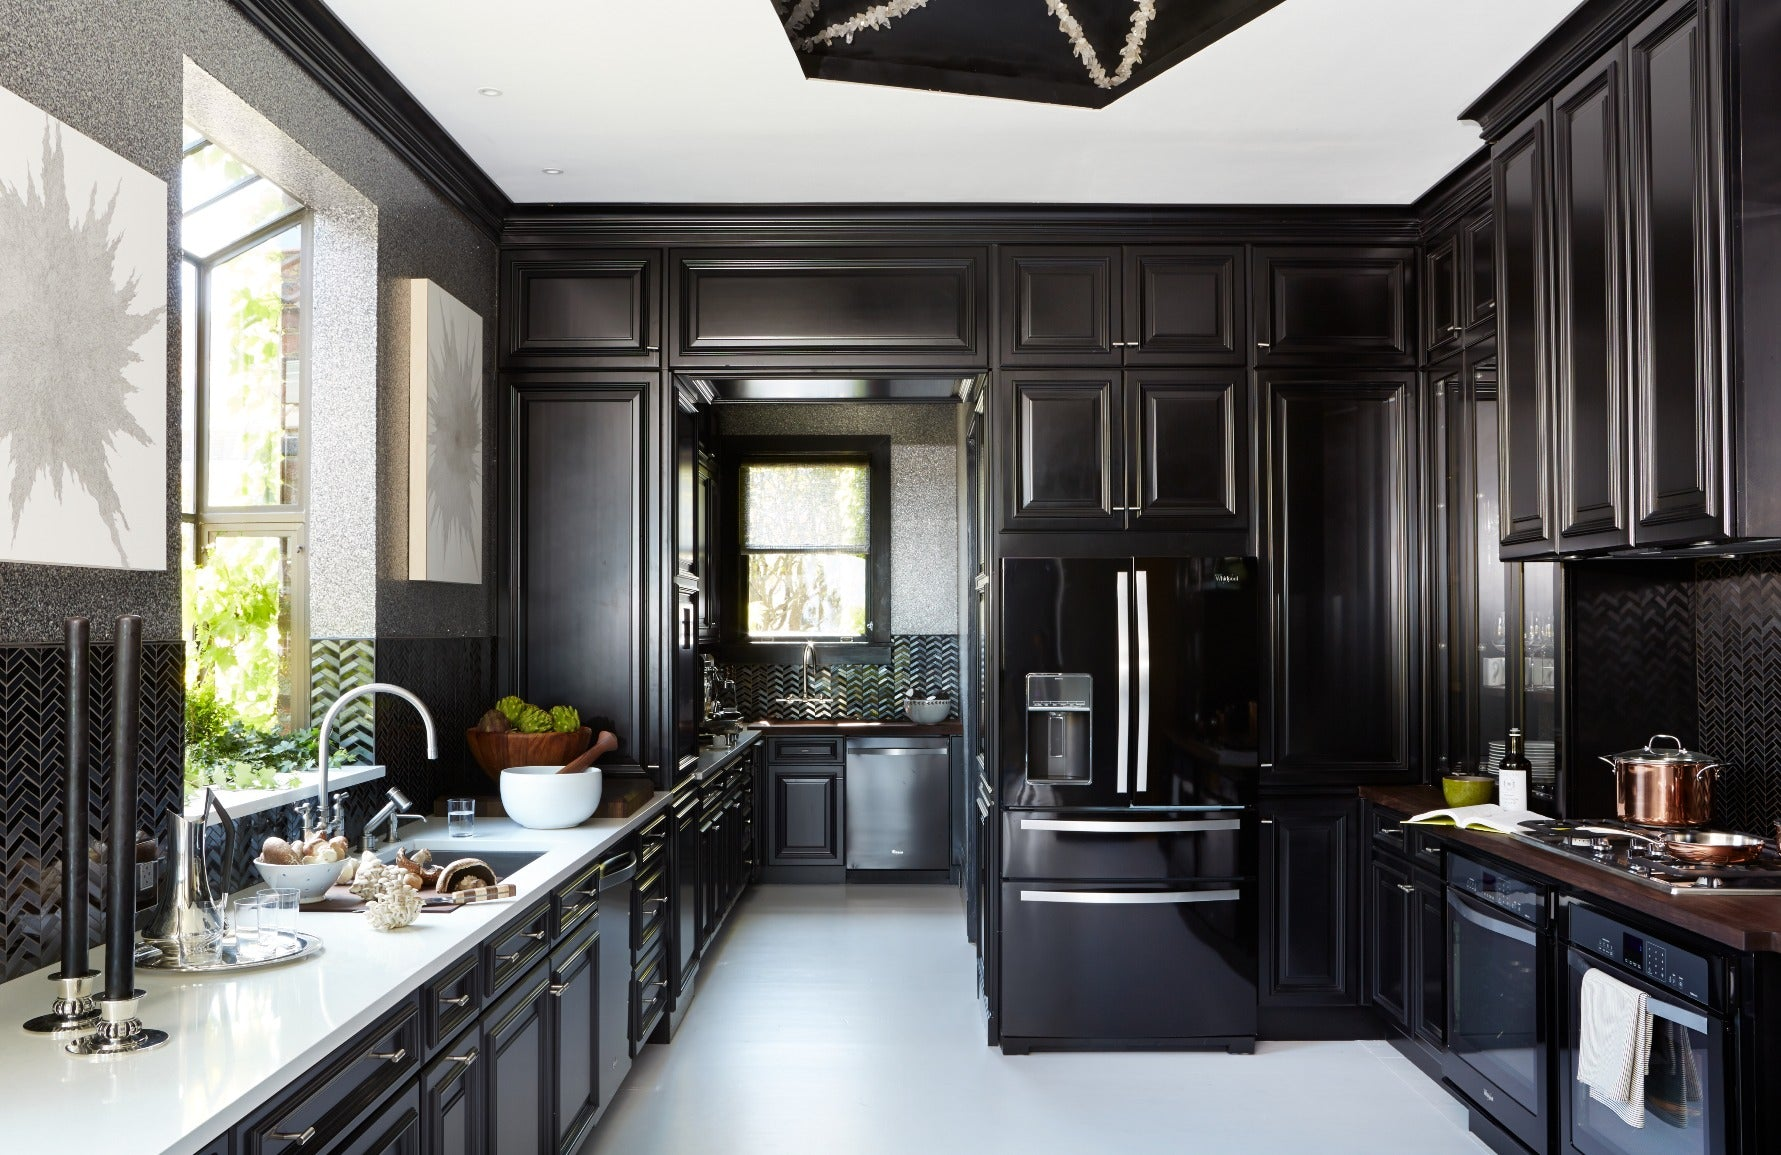 Amazing Kitchen Design Ideas – Steven Miller - LuxDeco.com Style Guide